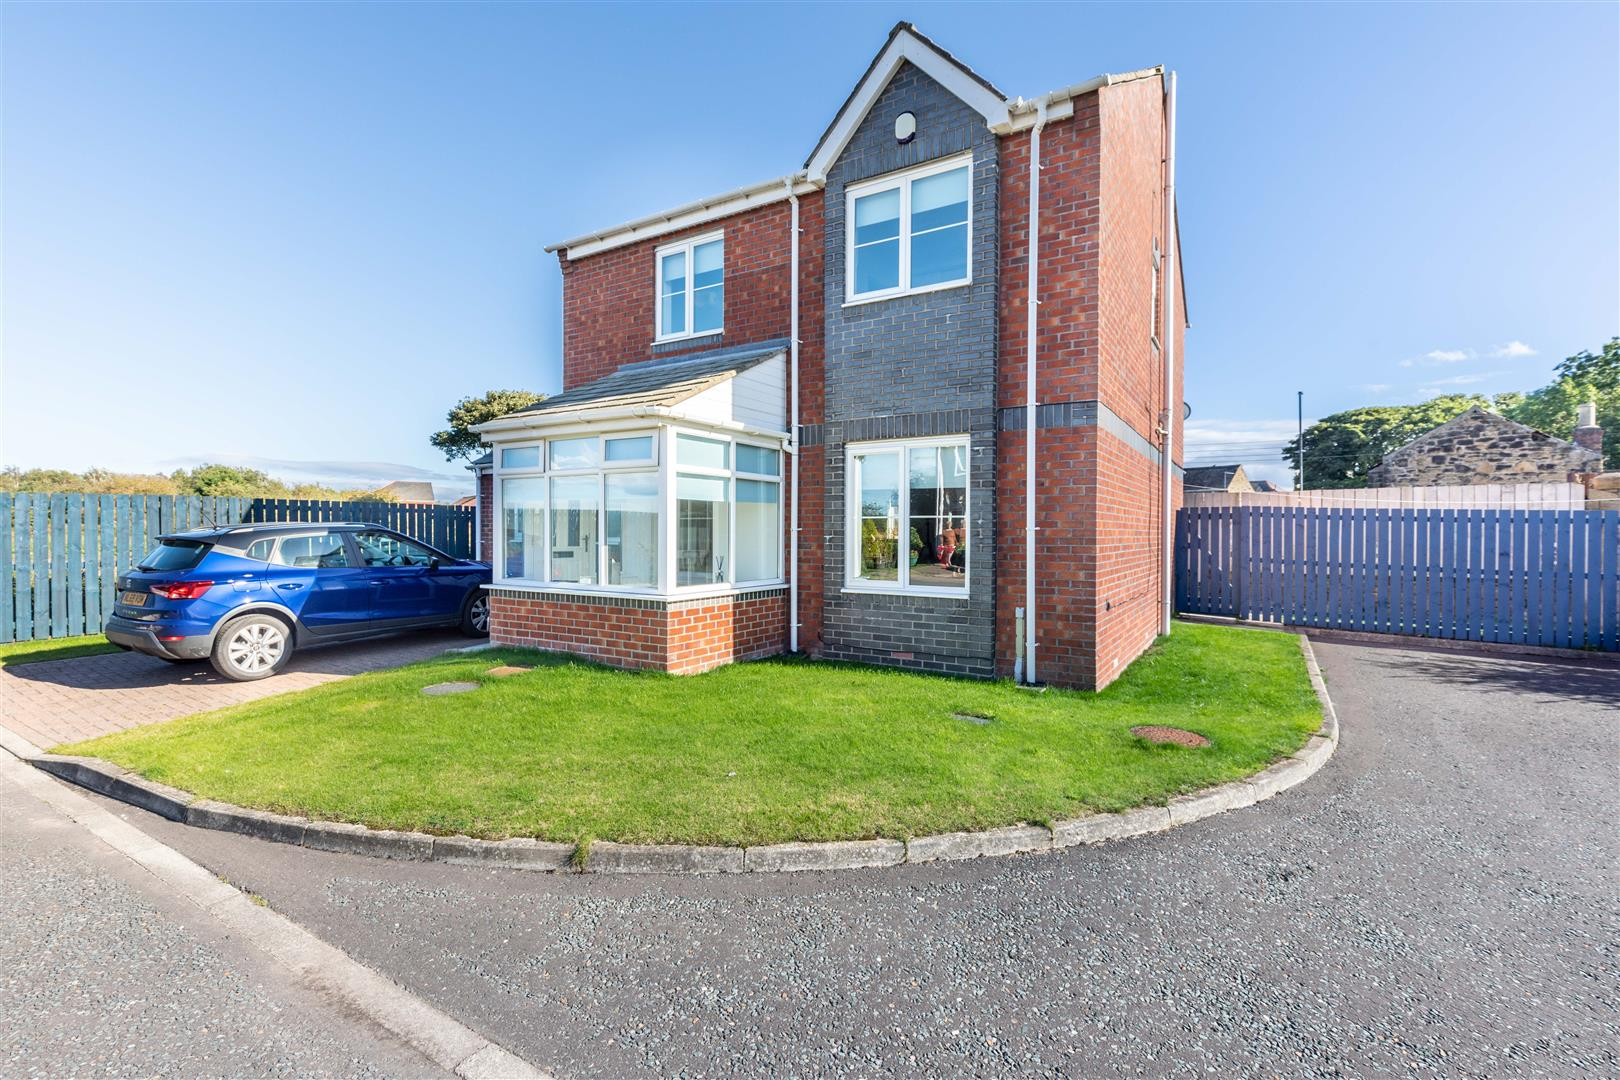 3 bed detached house for sale in Newcastle Upon Tyne, NE13 6EA - Property Image 1